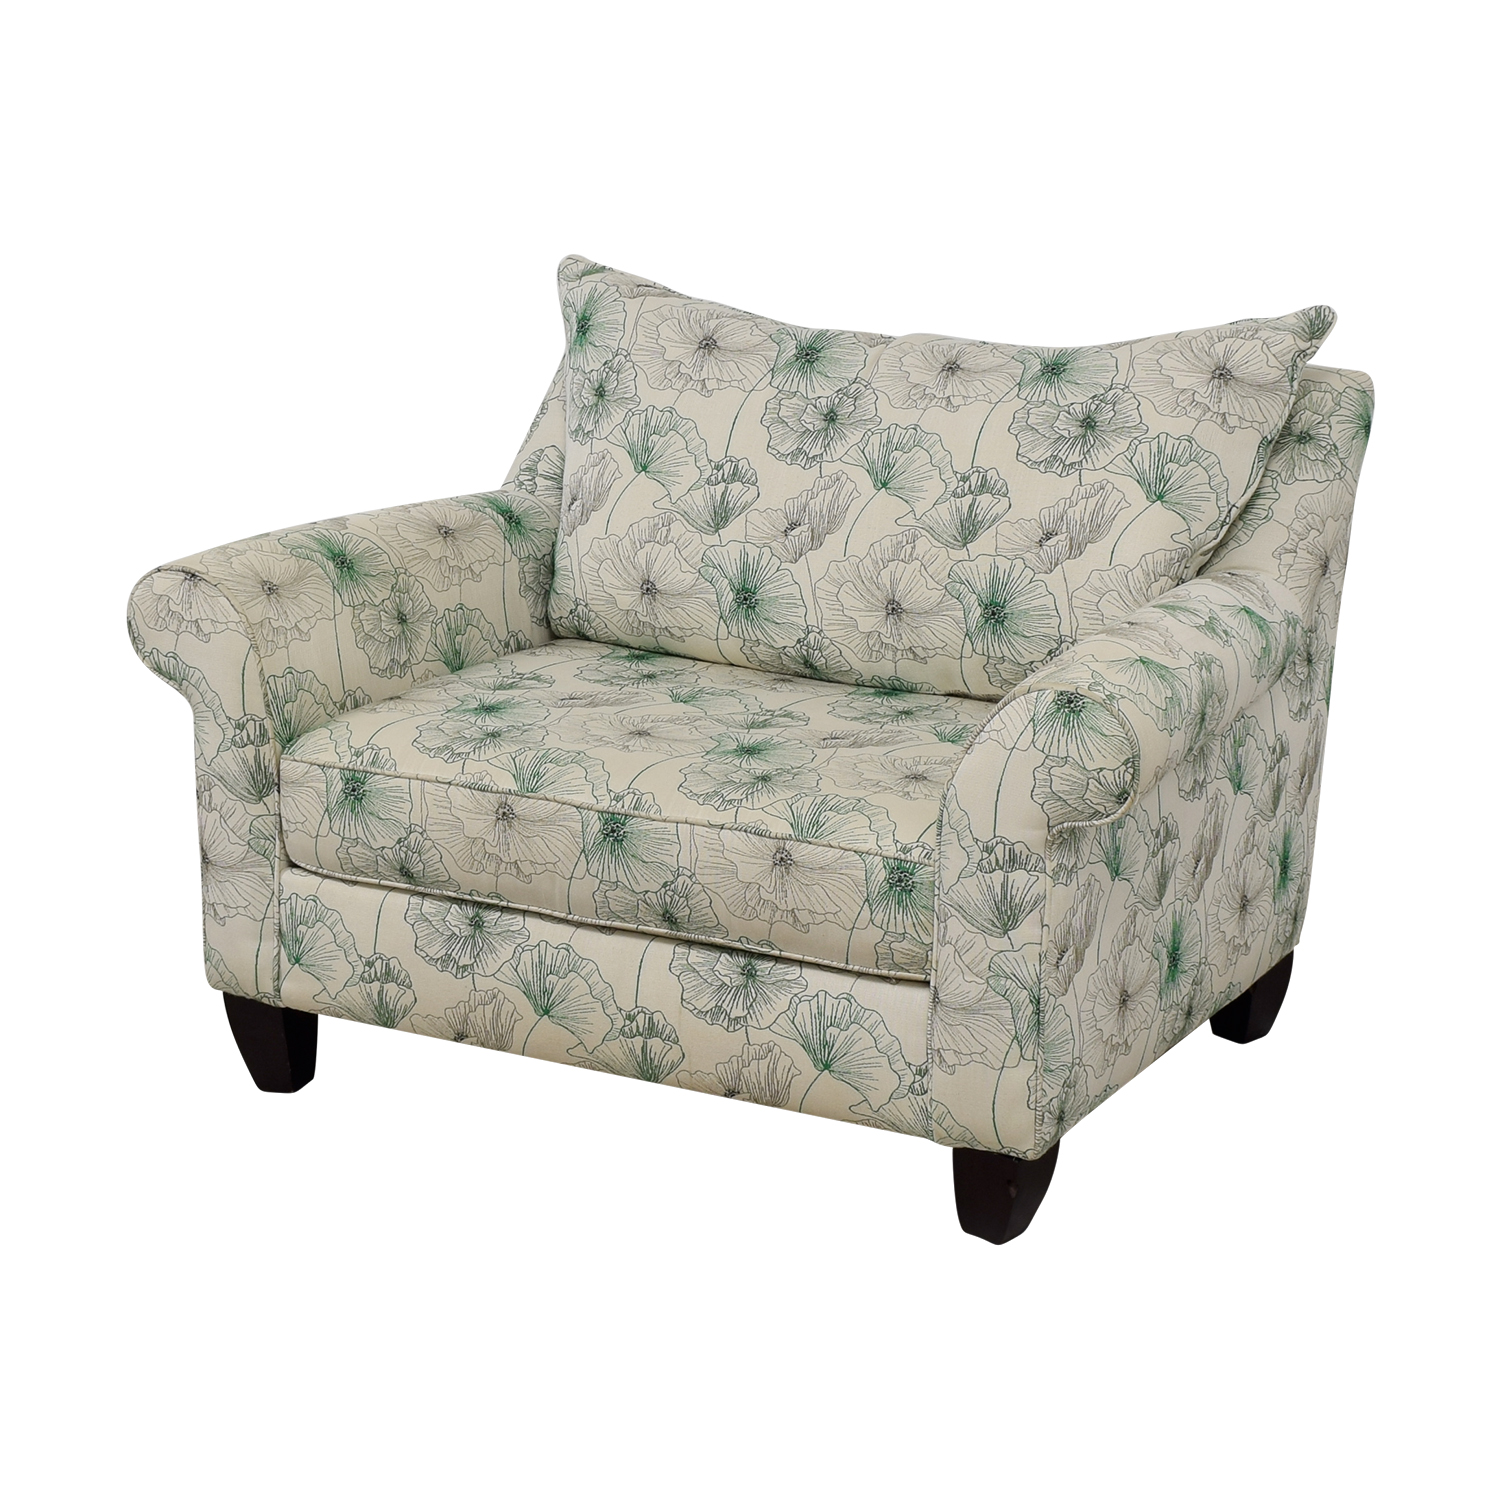 Fine 74 Off American Signature American Signature White And Green Floral Loveseat Sofas Machost Co Dining Chair Design Ideas Machostcouk